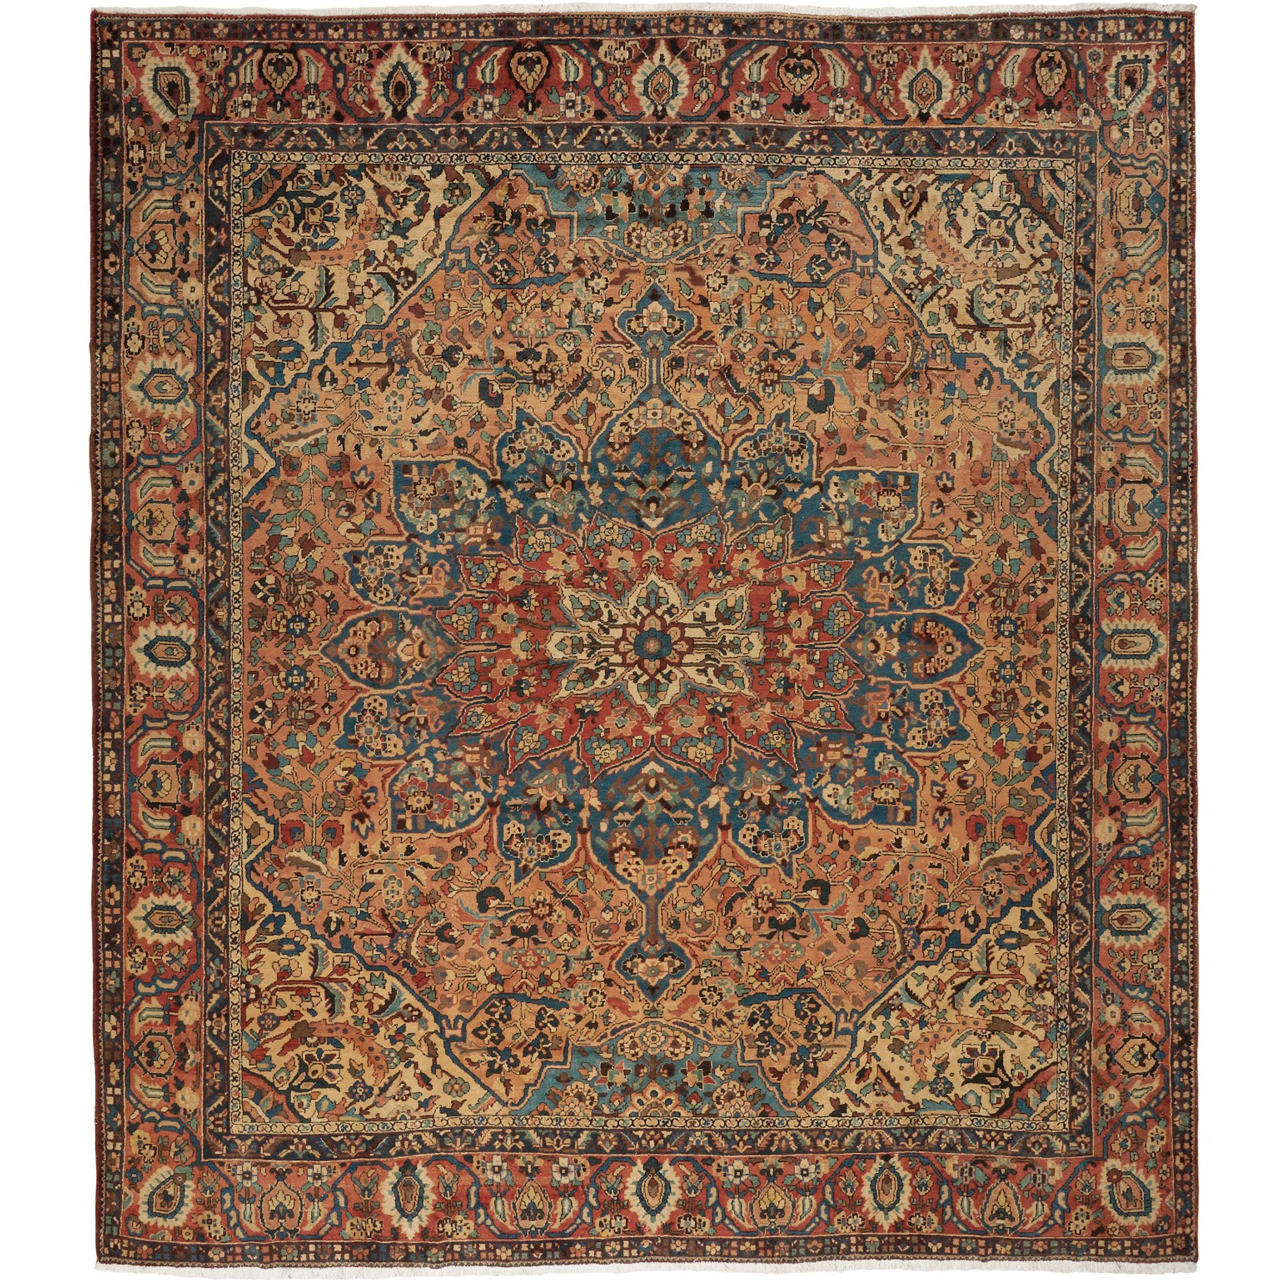 Oversize Antique Bakhtiari Carpet For Sale